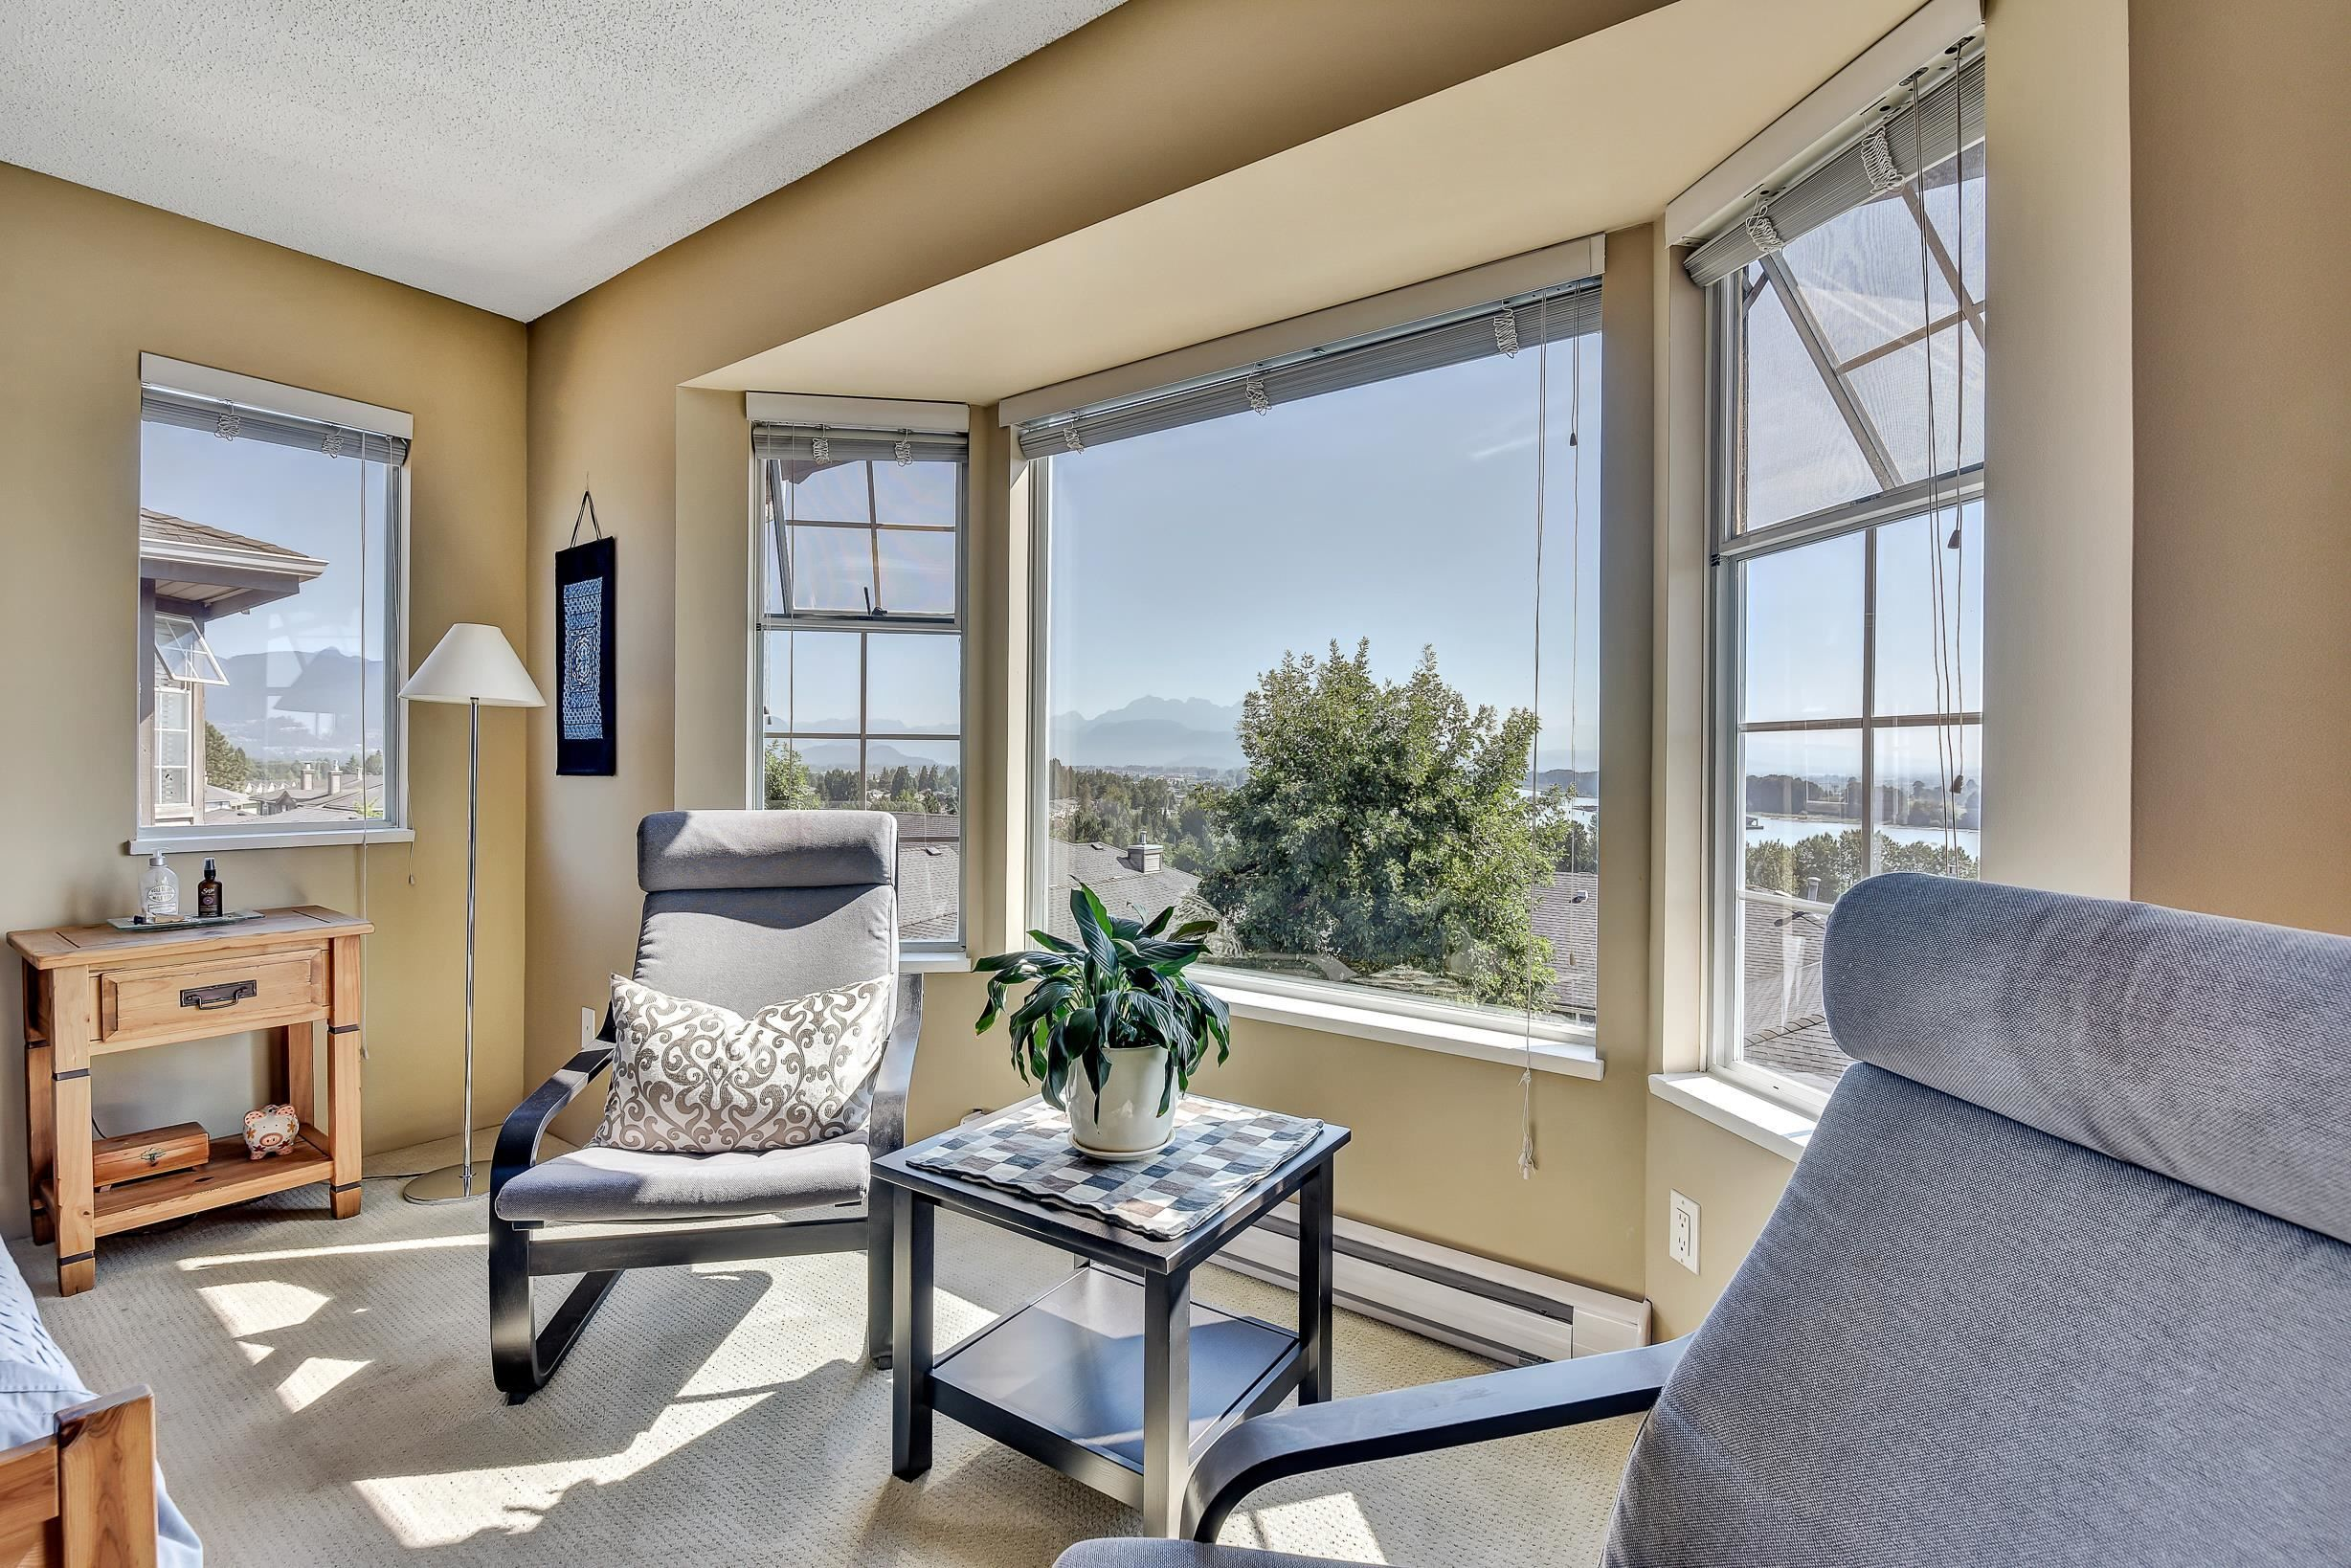 """Photo 21: Photos: 208 1140 CASTLE Crescent in Port Coquitlam: Citadel PQ Townhouse for sale in """"THE UPLANDS"""" : MLS®# R2609078"""